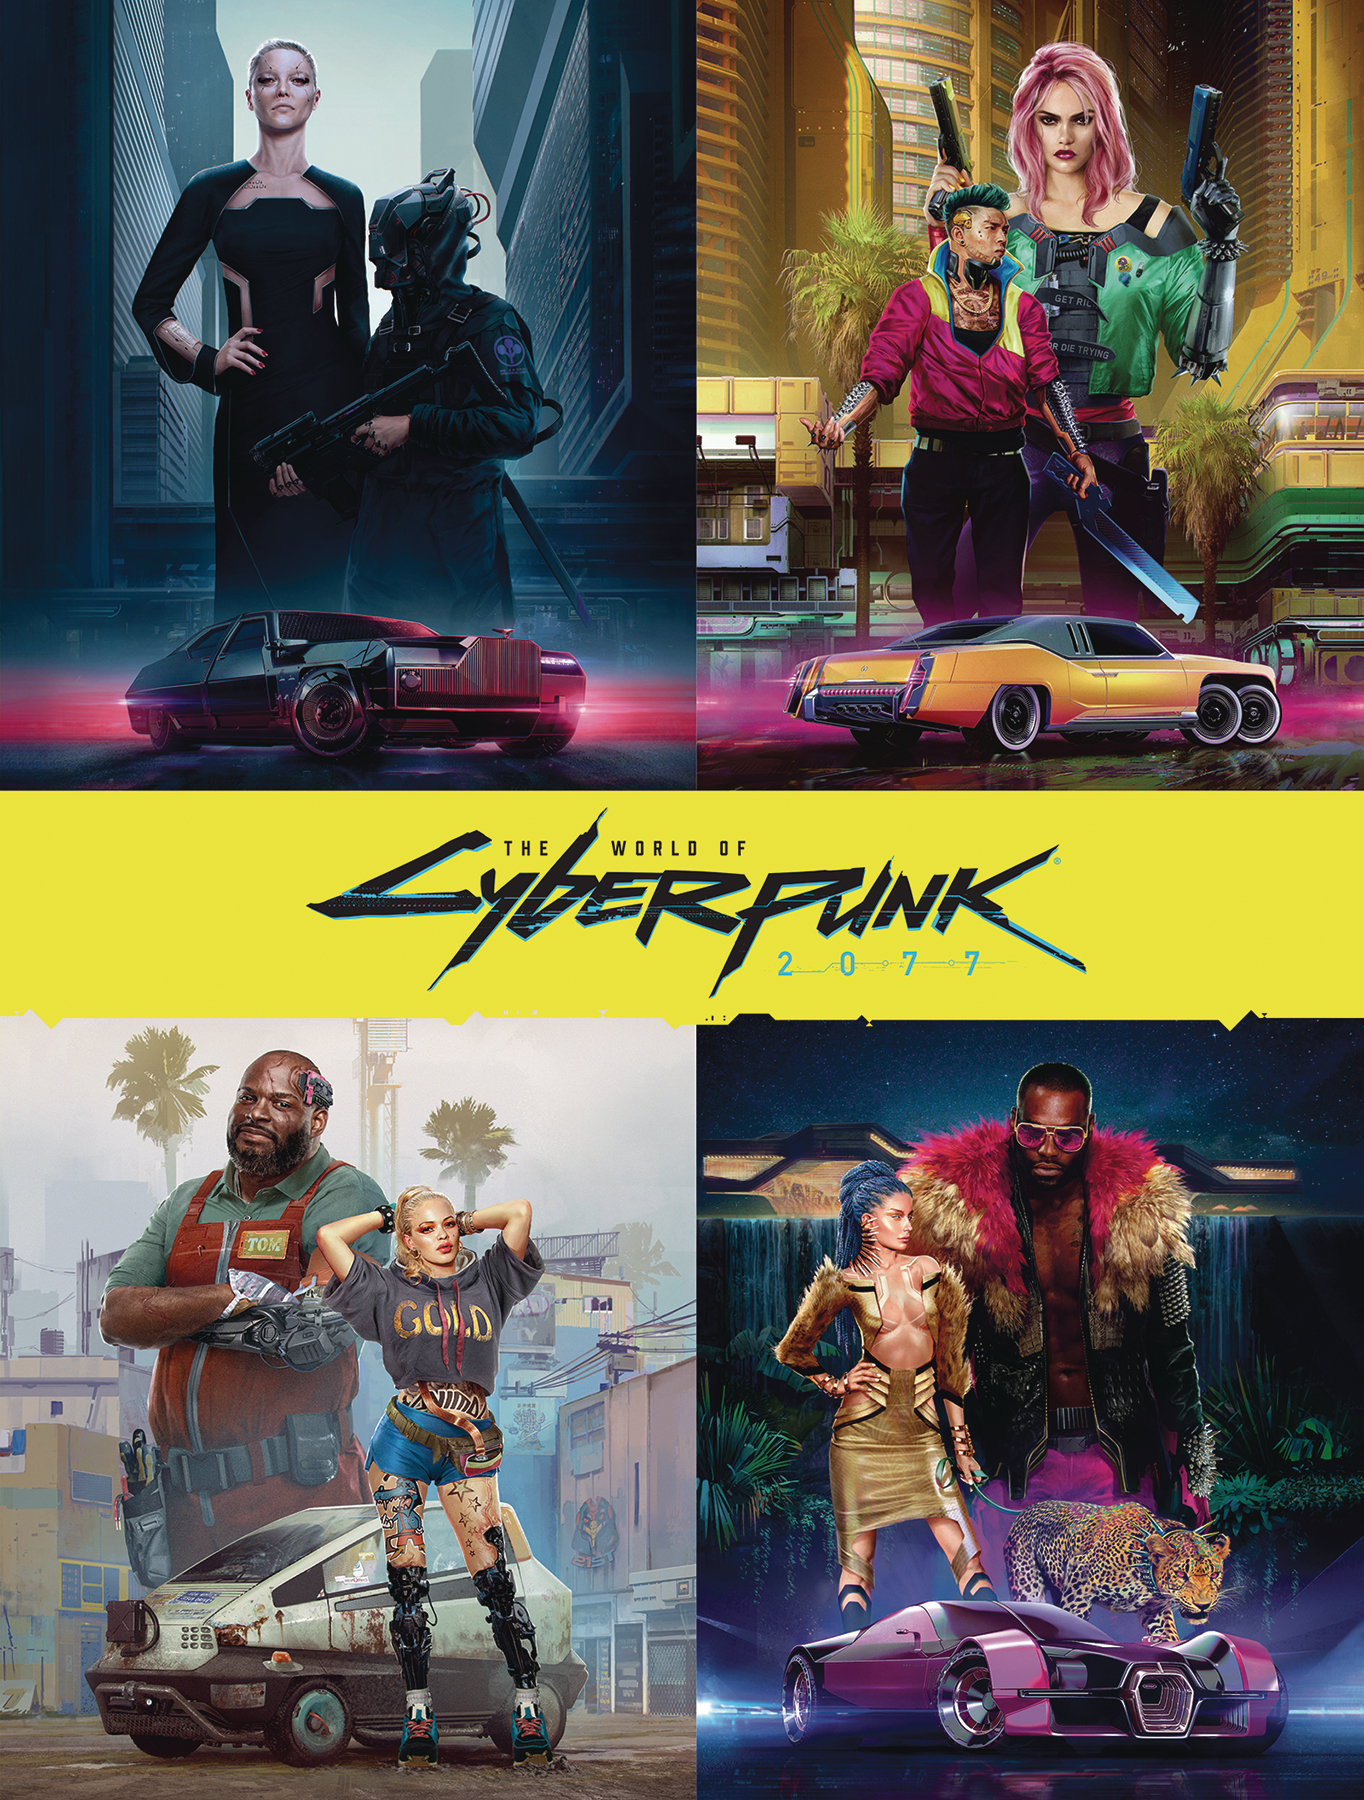 WORLD OF CYBERPUNK 2077 HC (O/A)